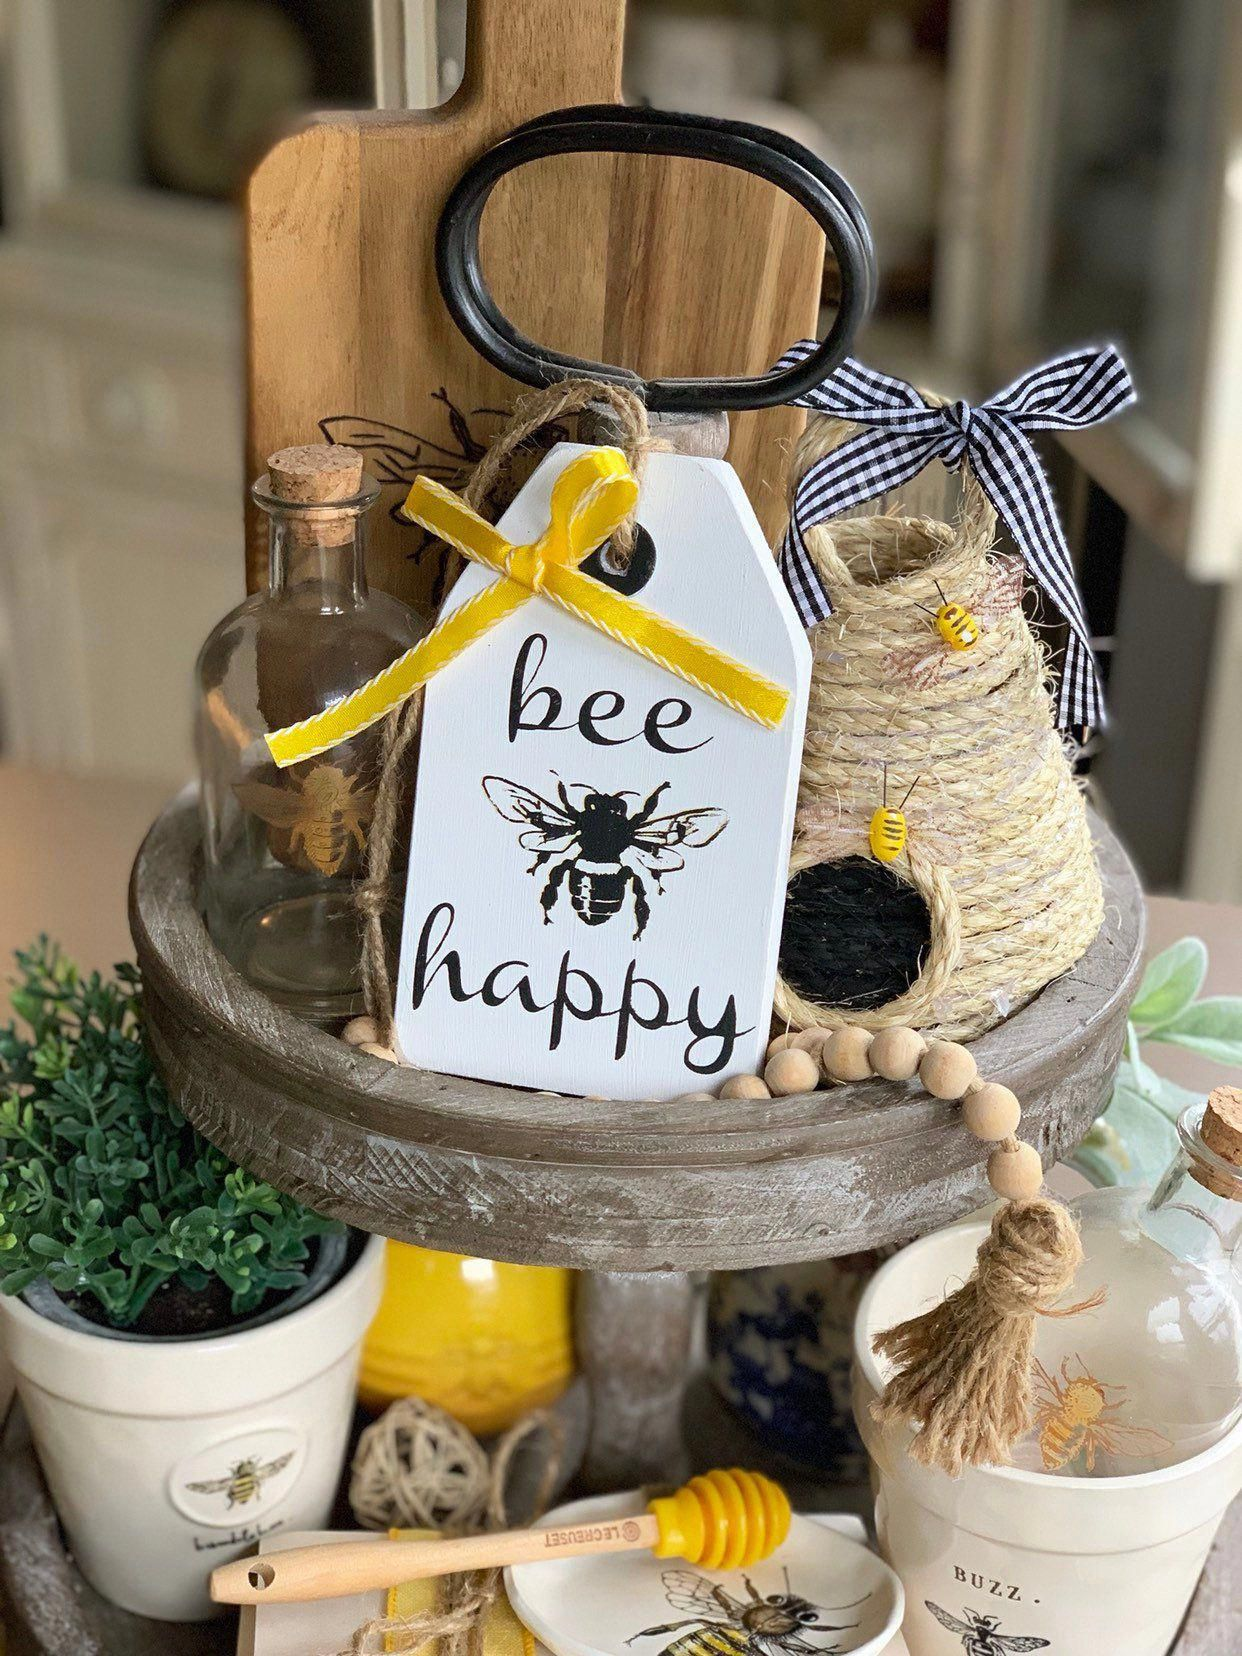 Photo of Bee Happy sign / Tiered tray decor / Tiered tray signs / Wood tag / Bee decor / Honey Bee Wooden tag sign / Farmhouse decor